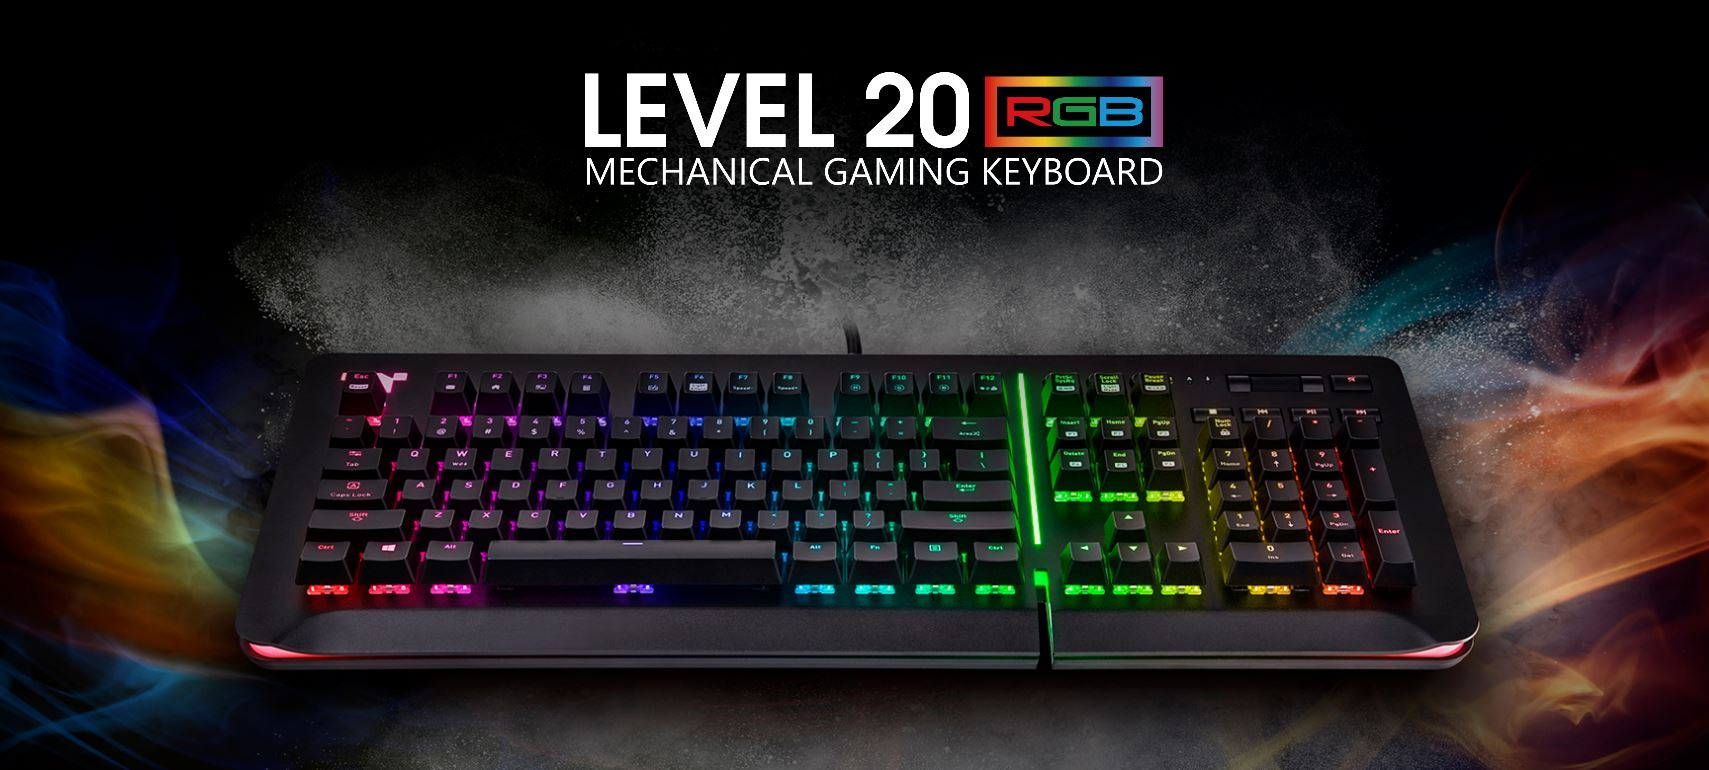 Level 20 RGB Keyboard